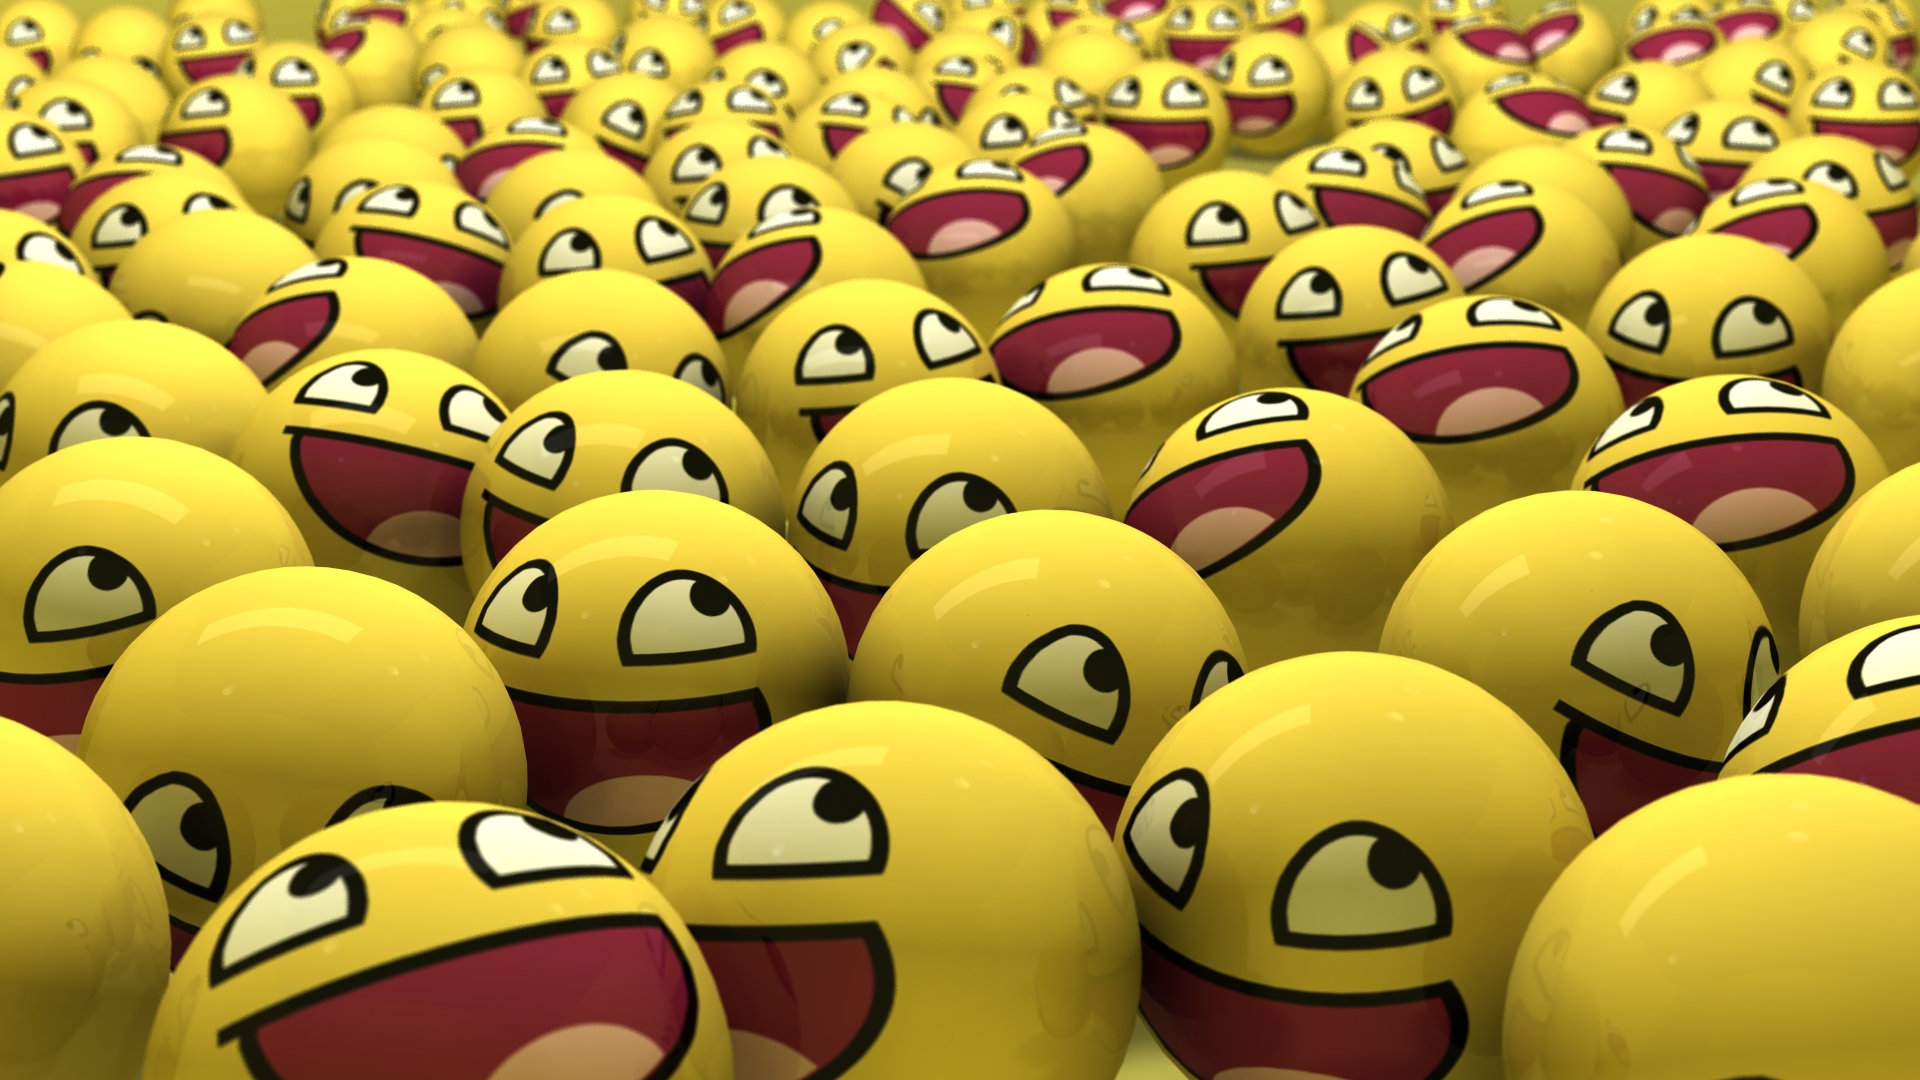 Smiley Faces Wallpaper